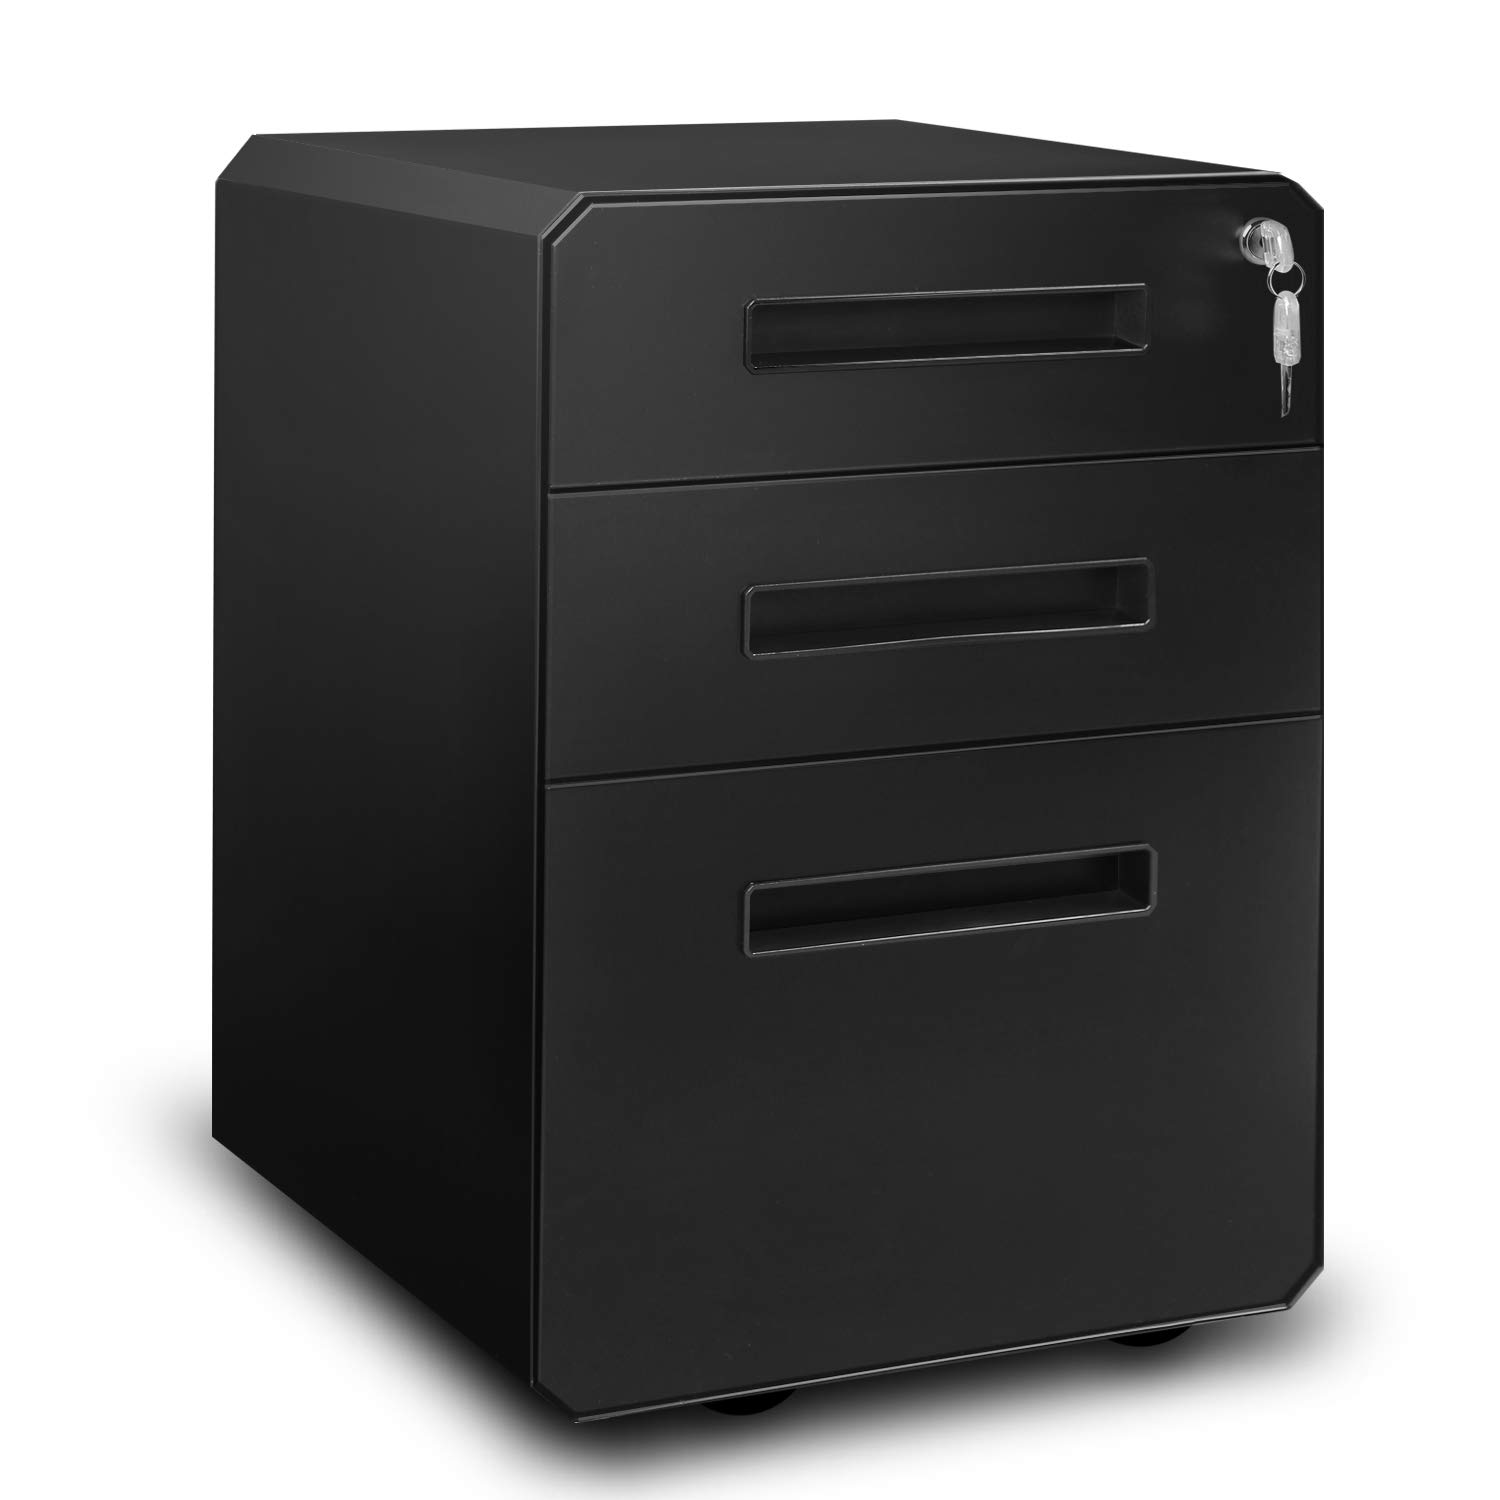 M&W 3 Drawer Mobile File Cabinet, Metal Locking Letter Filing Cabinet by M/W M & W